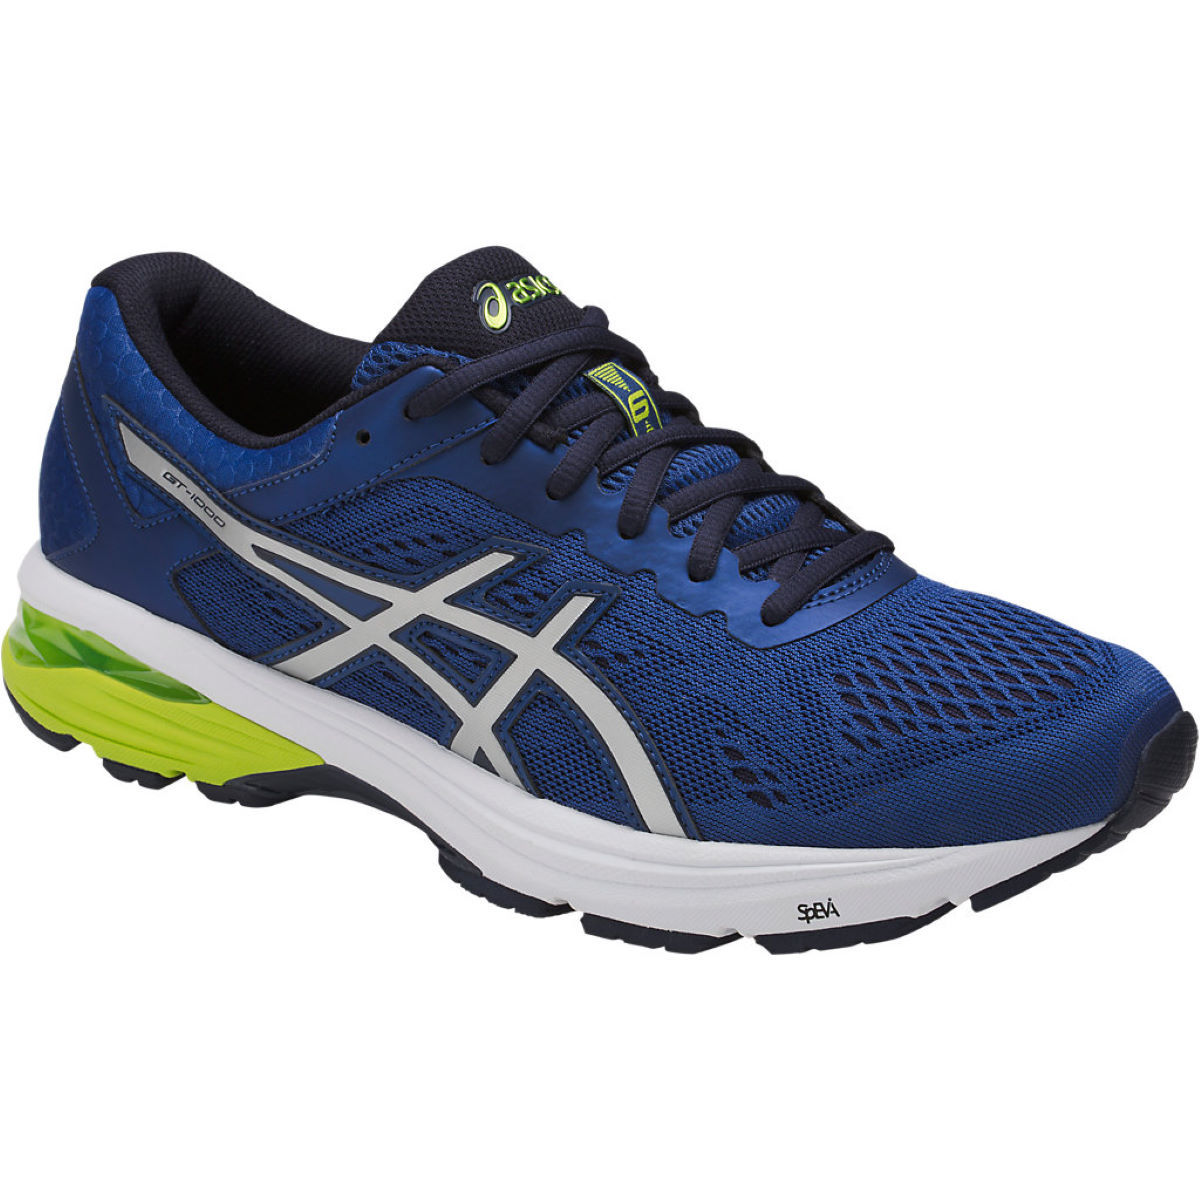 Chaussures Asics GT-1000 6 - UK 11 Limoges/Silver/Peaco